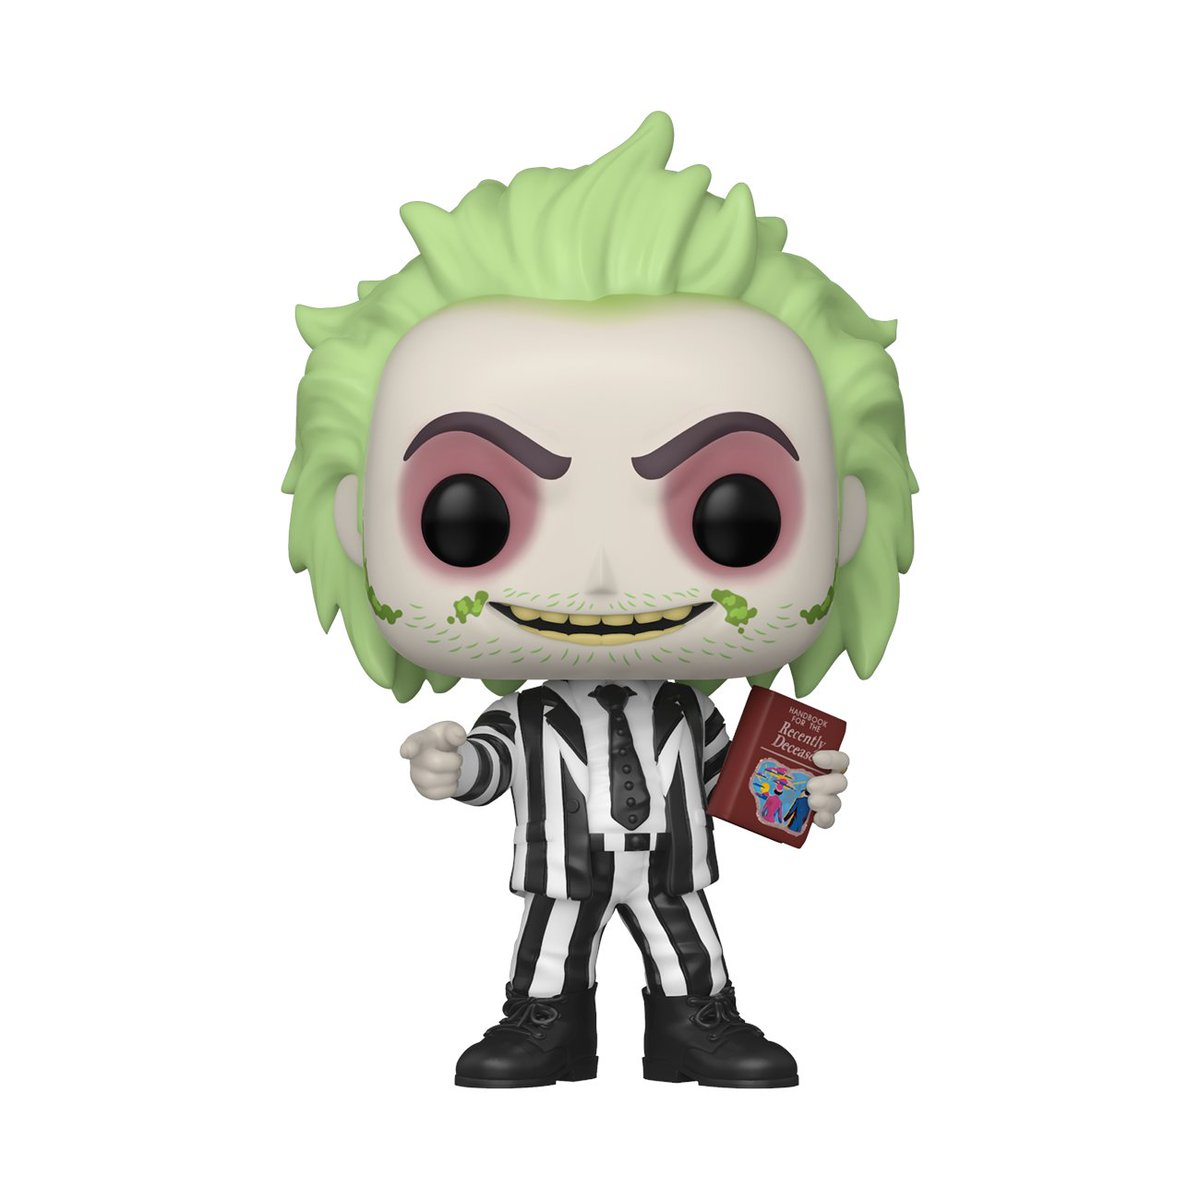 RT & follow @OriginalFunko for a chance to win this NYCC exclusive Beetlejuice Pop! #FunokVirtualCon #FunkoNYCC #NYCC #Funkoween